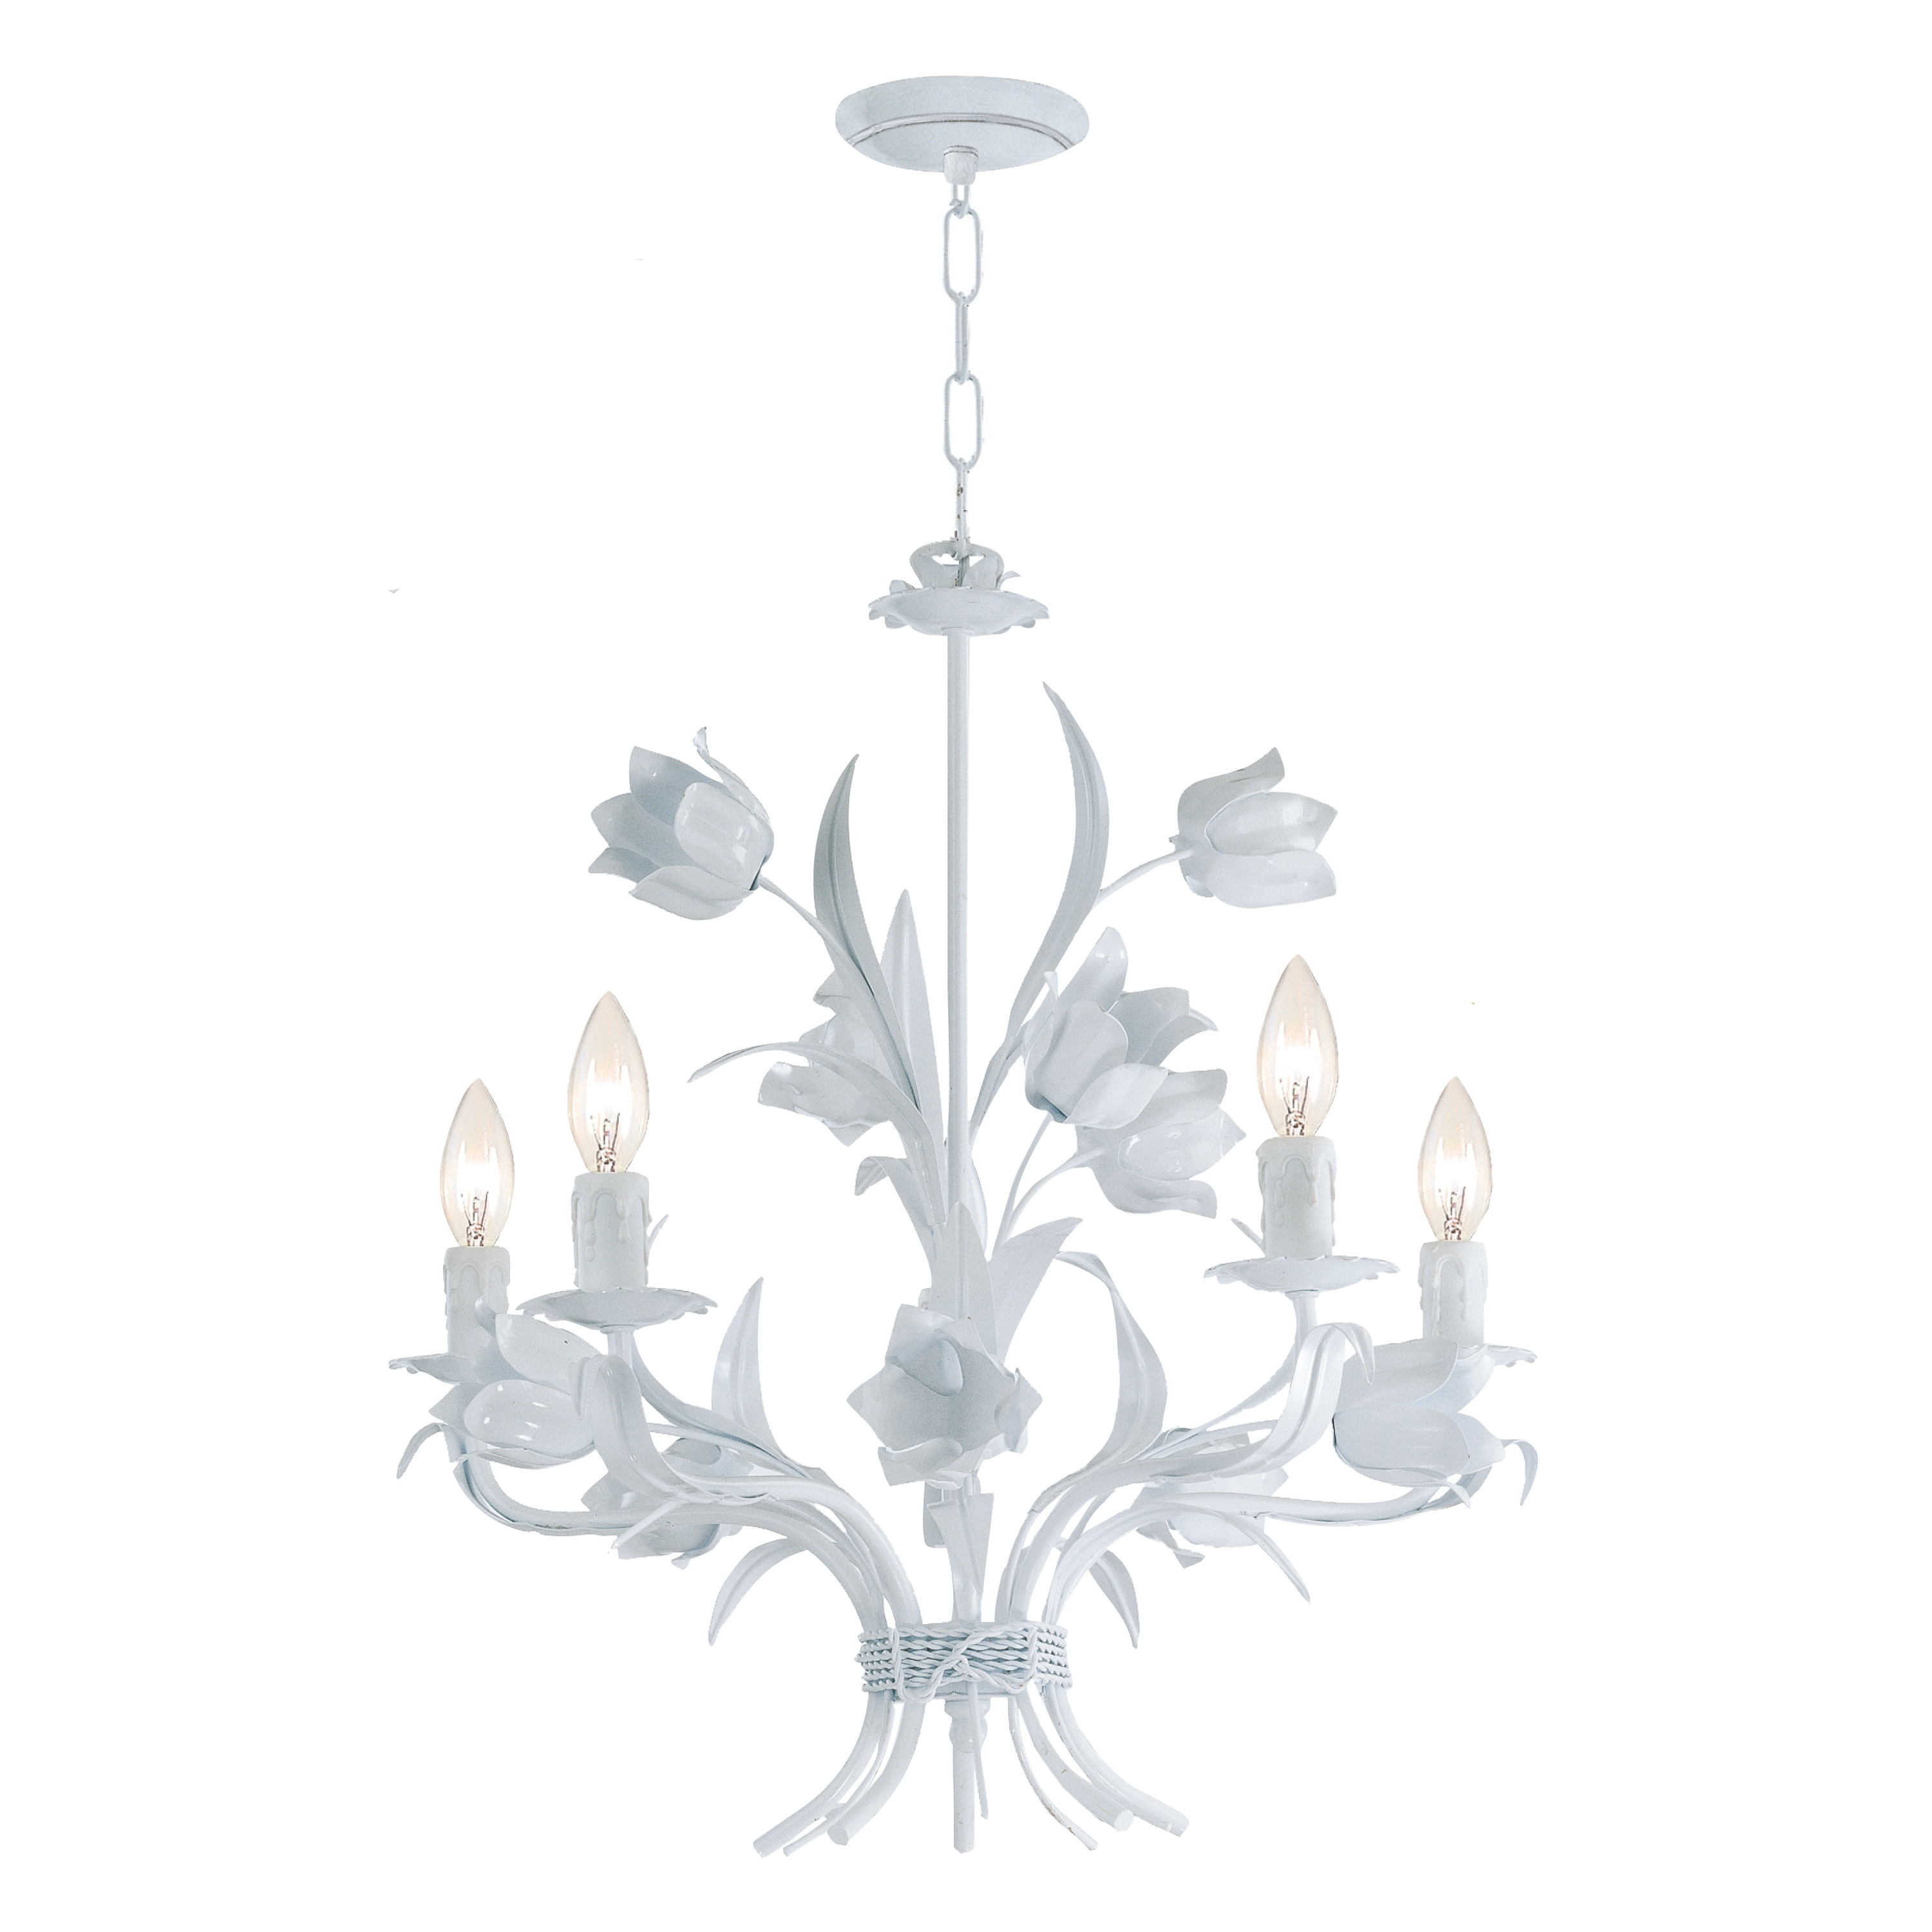 Crystorama southport 5 light white floral chandelier free crystorama southport 5 light white floral chandelier free shipping today overstock 13418882 arubaitofo Image collections